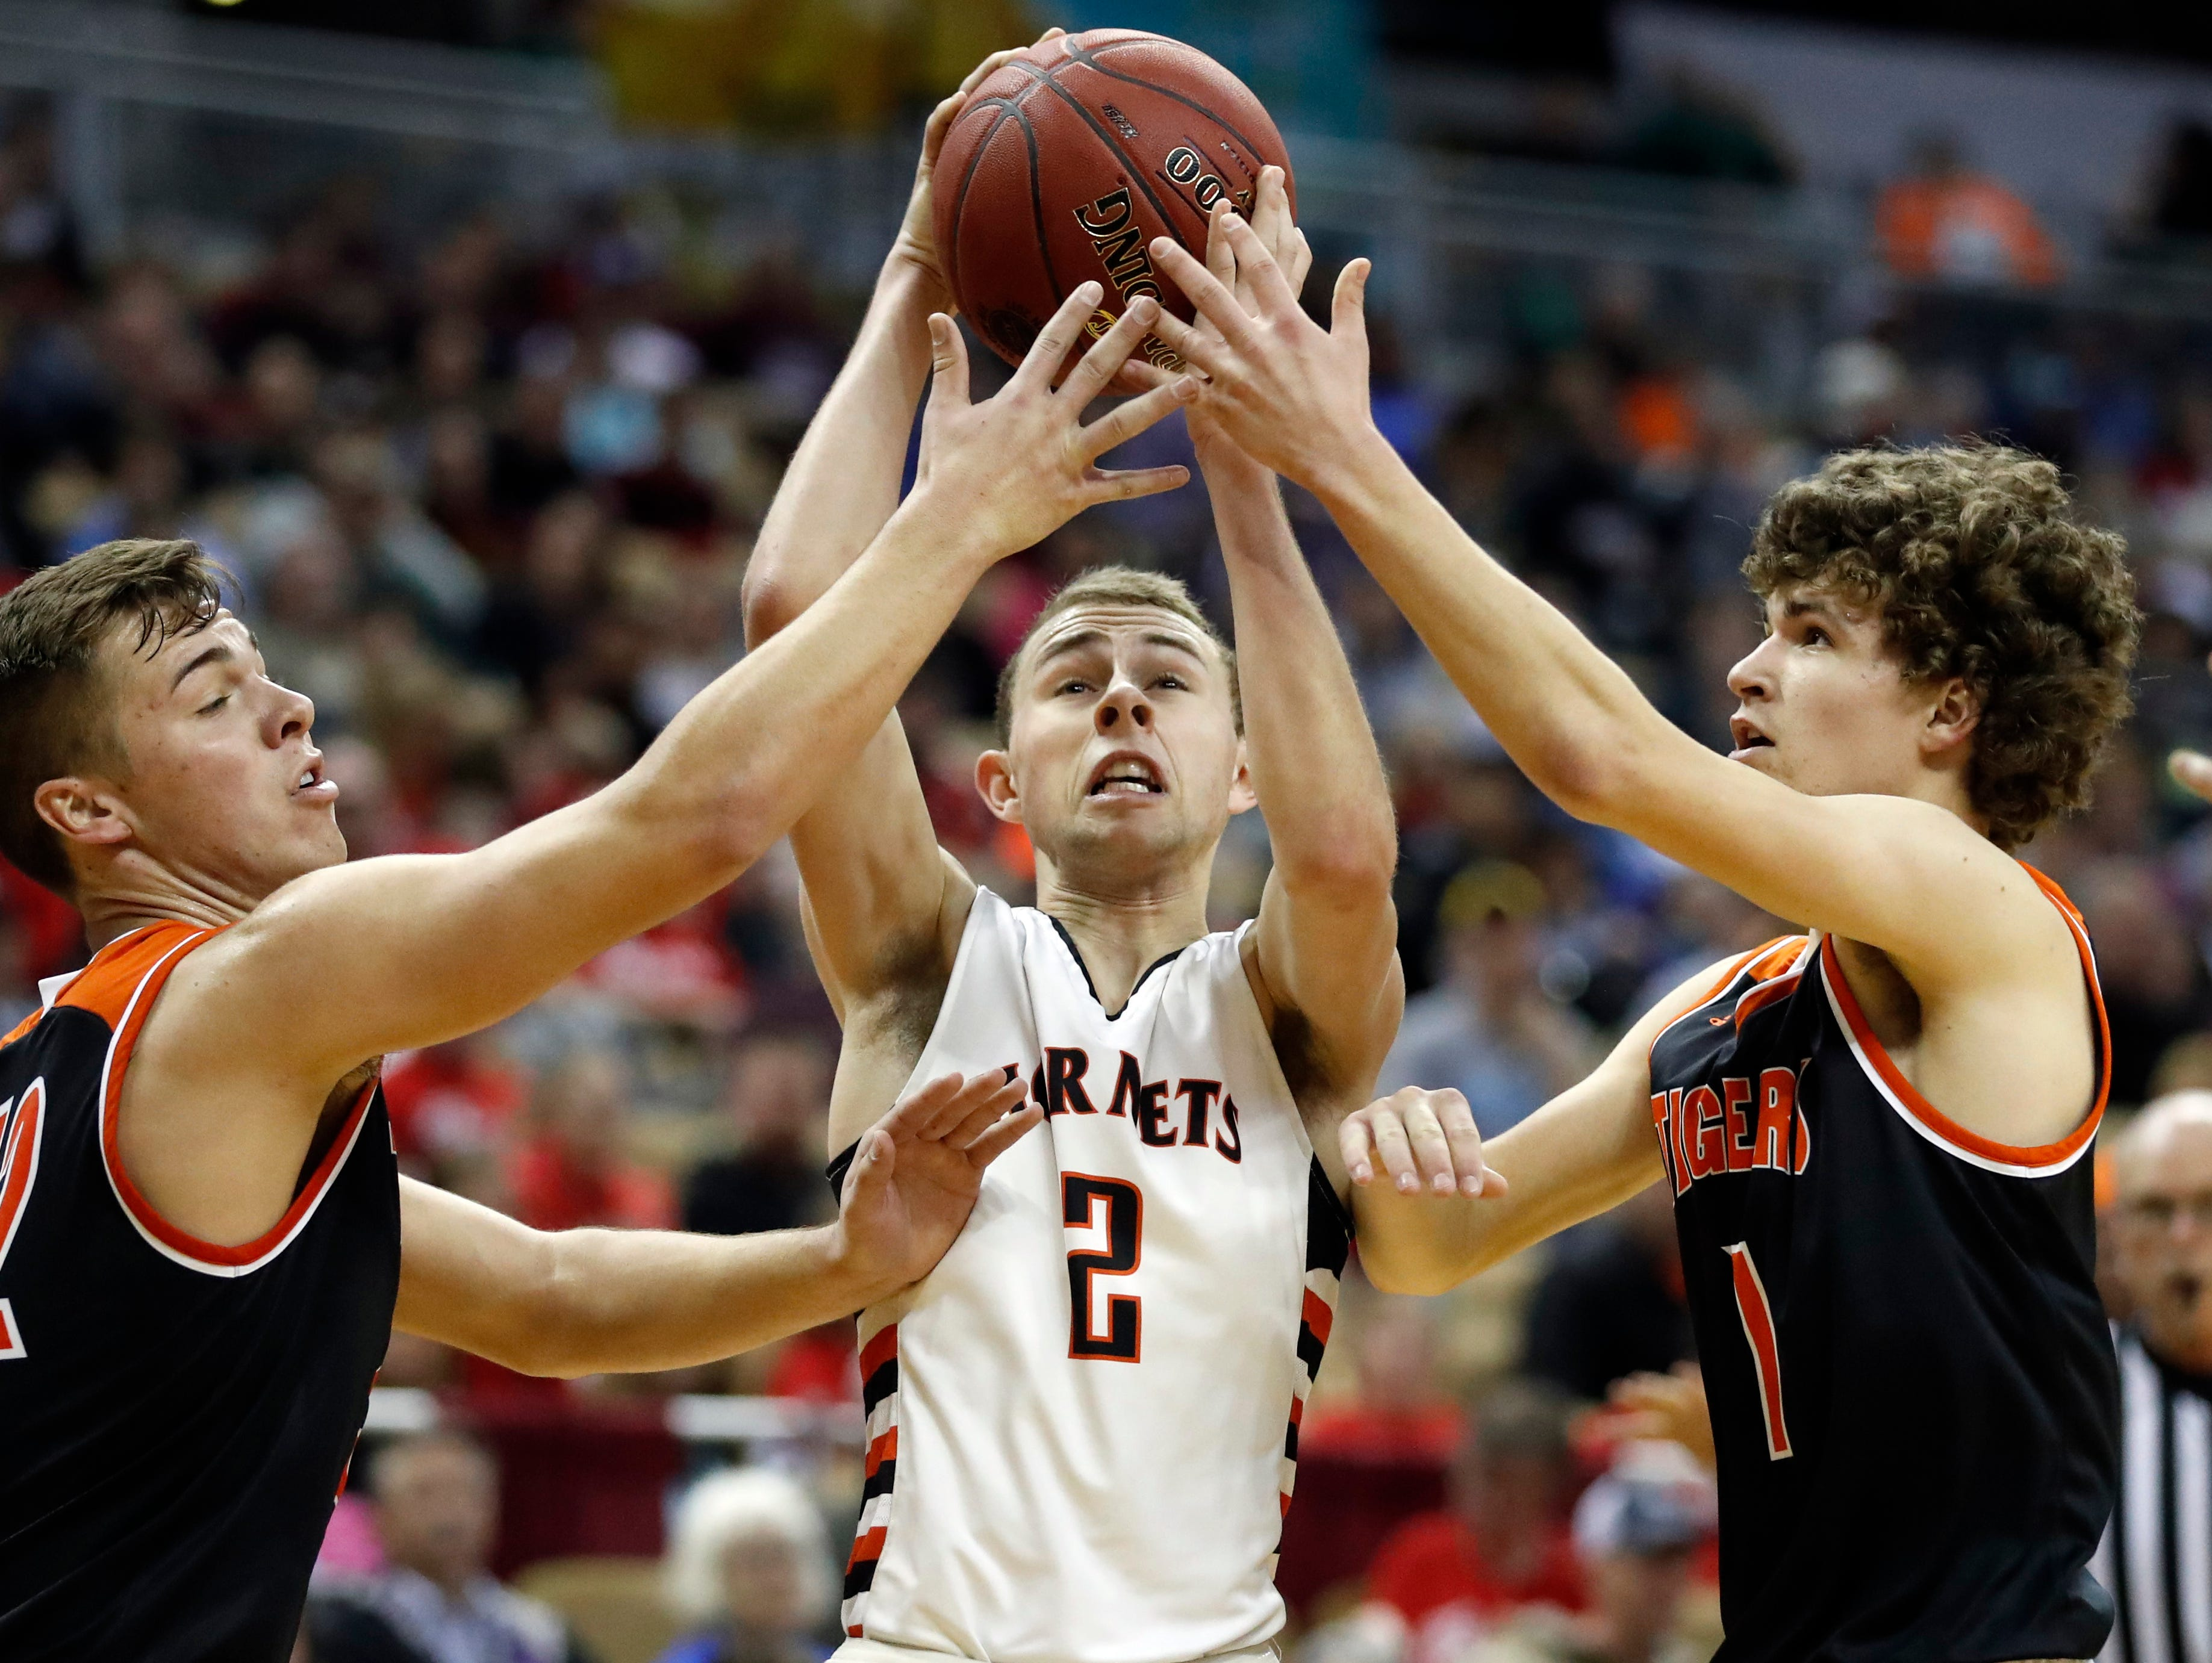 Advance's Preston Wuebker, center, tries to shoot between Walnut Grove's Logan Thomazin, left, and Cory Countryman during the second half of the Missouri Class 1 boys high school championship basketball game Saturday, March 11, 2017, in Columbia, Mo. Walnut Grove won 65-62. (AP Photo/Jeff Roberson)